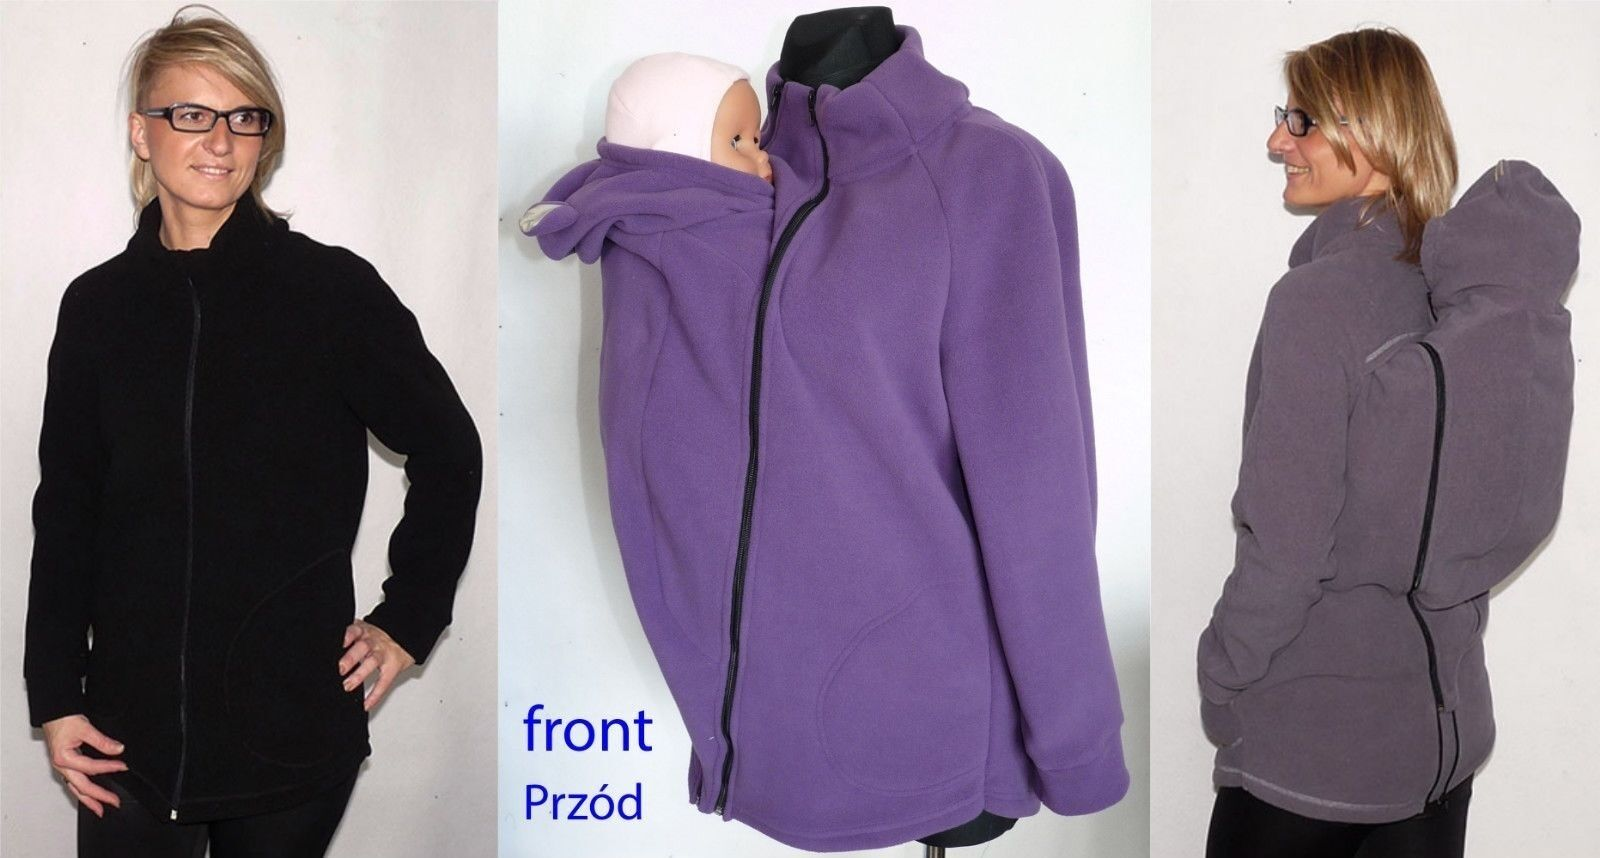 3 IN 1 BACK FRONT JACKET BABYWEARING FLEECE HOODIE GREAT FOR AUTUMN WARM COSY